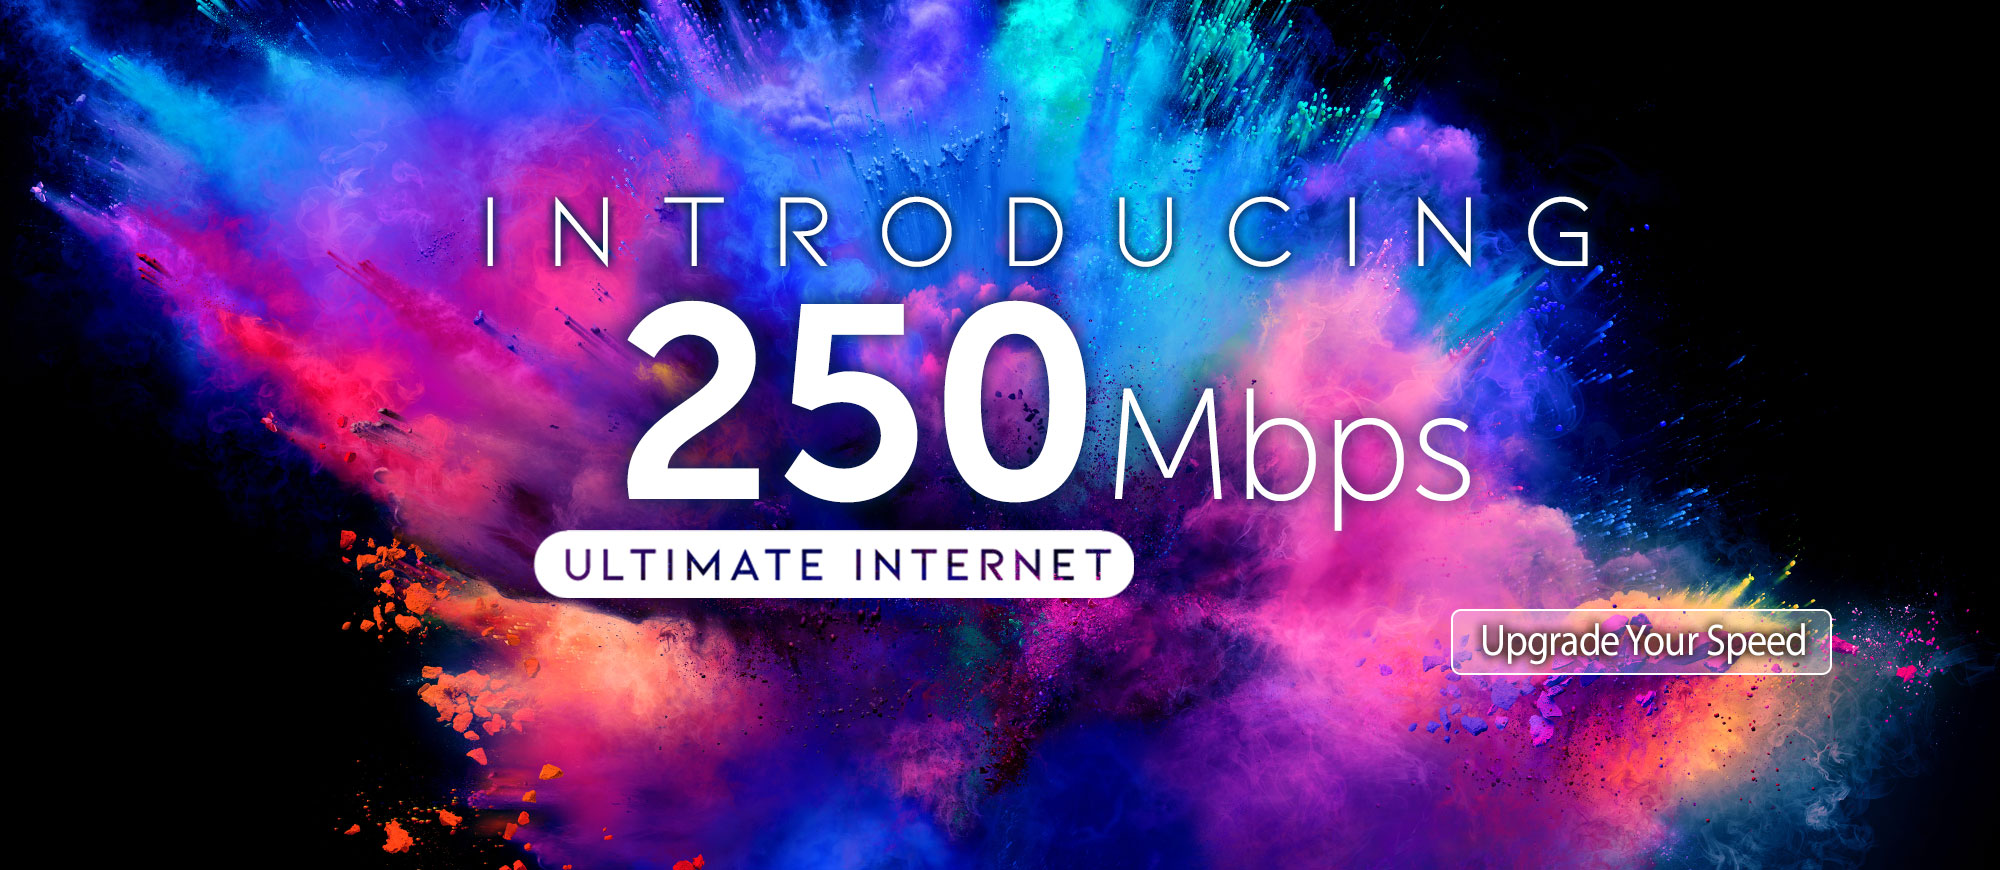 Introducing 250 M Service